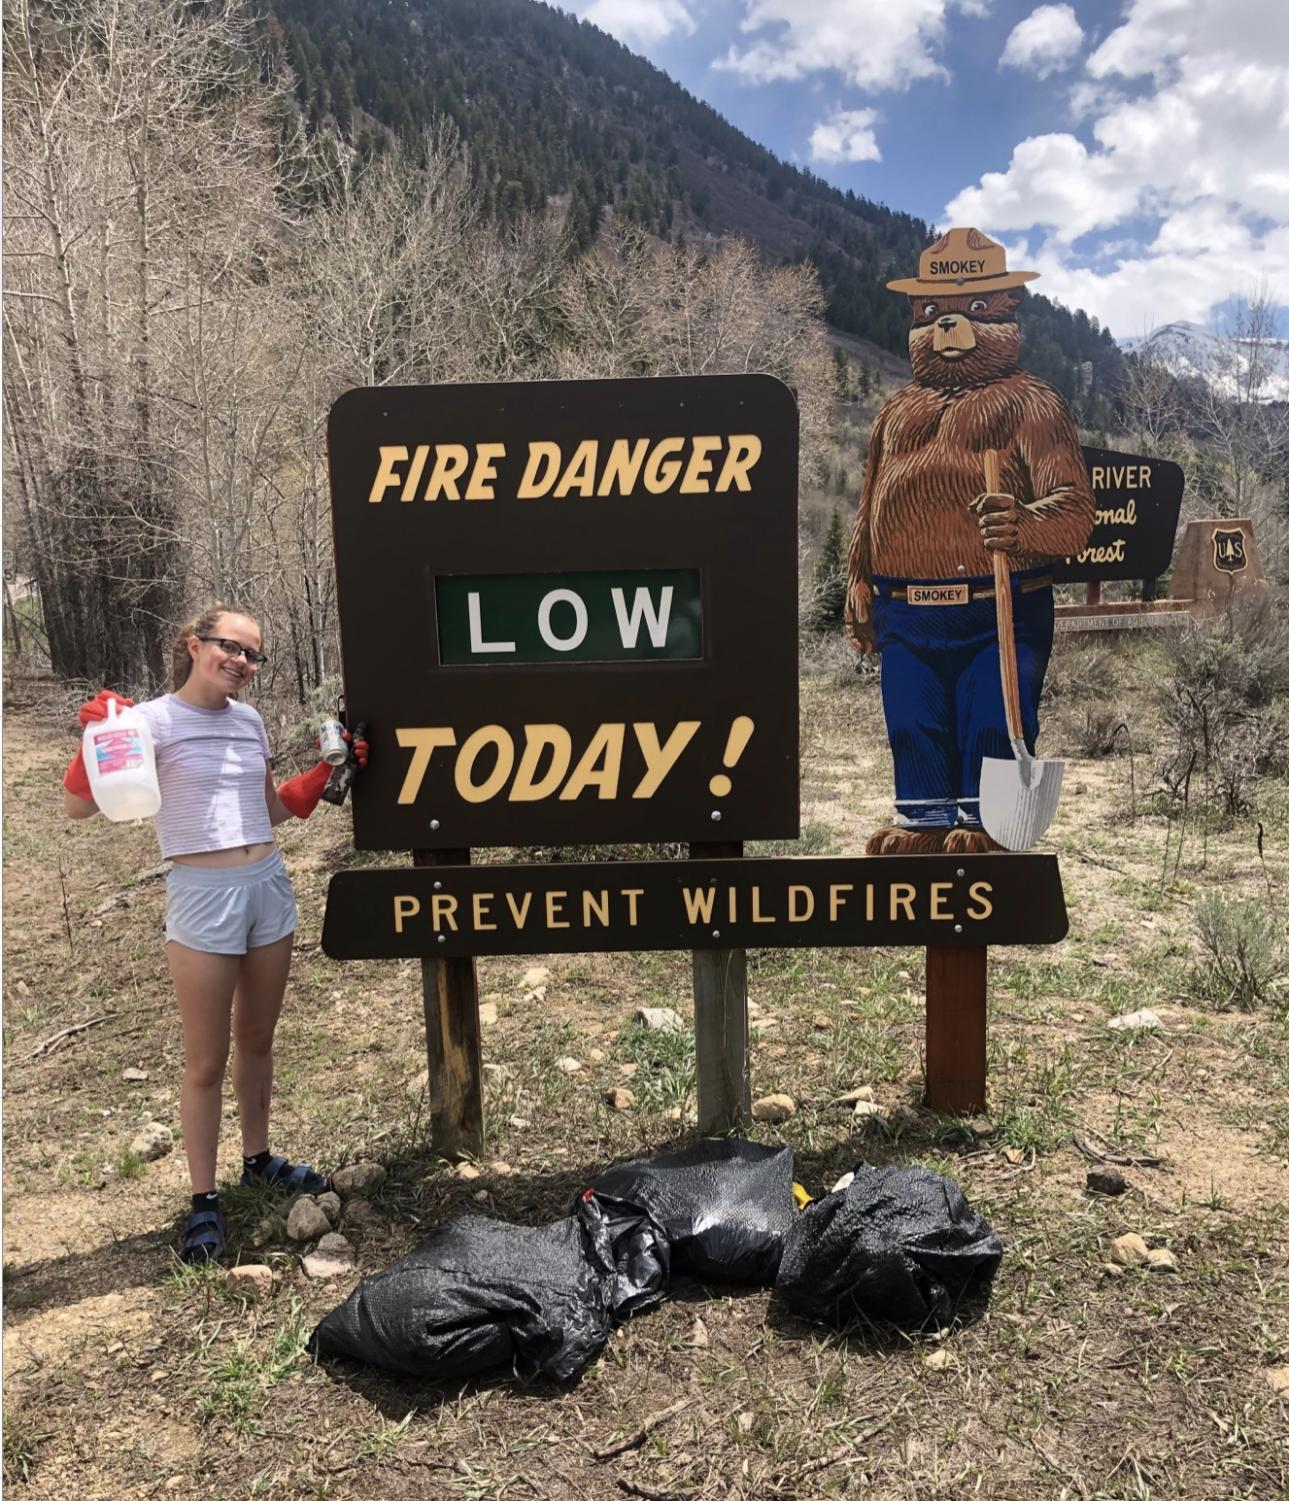 AHS junior, Olivia Burkley, posing next to fire danger sign on Independence Pass during the Guatemala Literacy Club's trash cleanup on May 4, 2019.